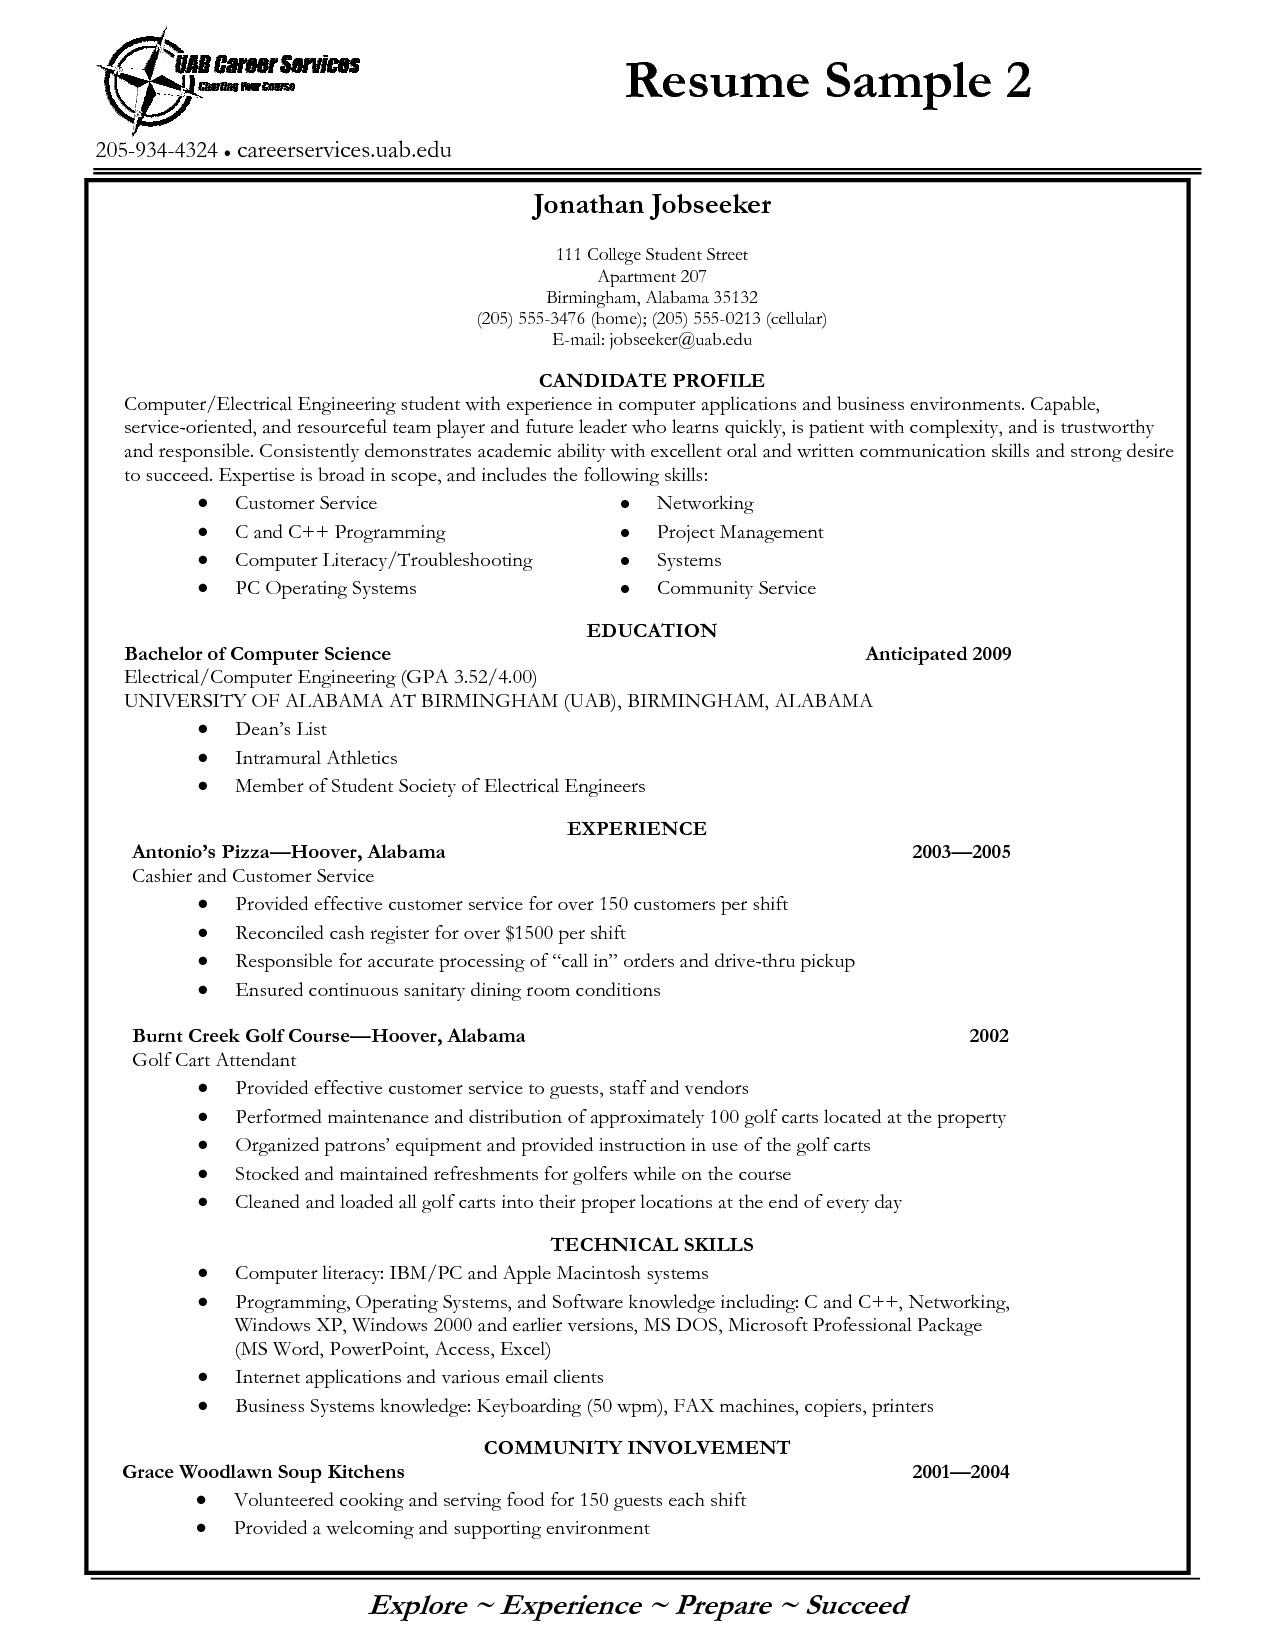 Tags college graduate resume no experience college graduate resume resume examples for high school students applying to collegeresume examples job letter sample madrichimfo Image collections